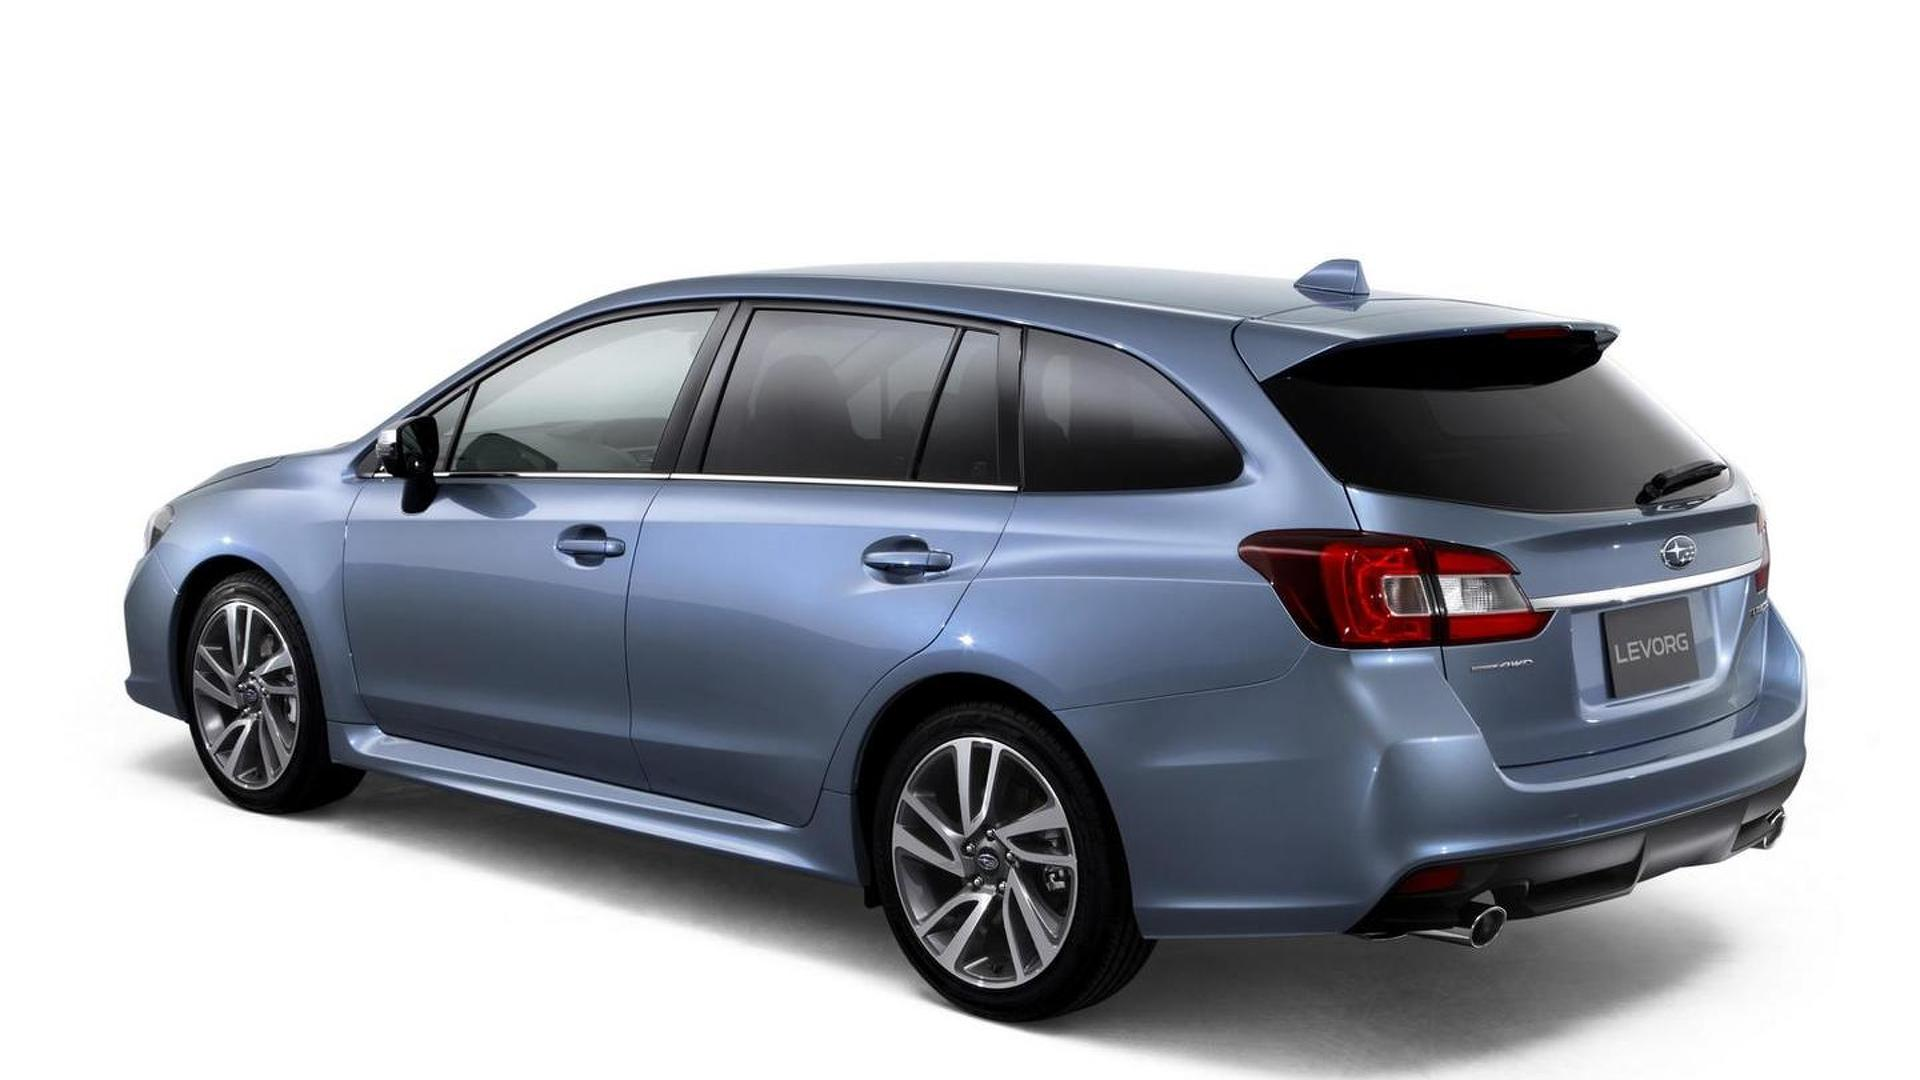 Subaru Levorg to be unveiled on New Year's Day, will be launched in May